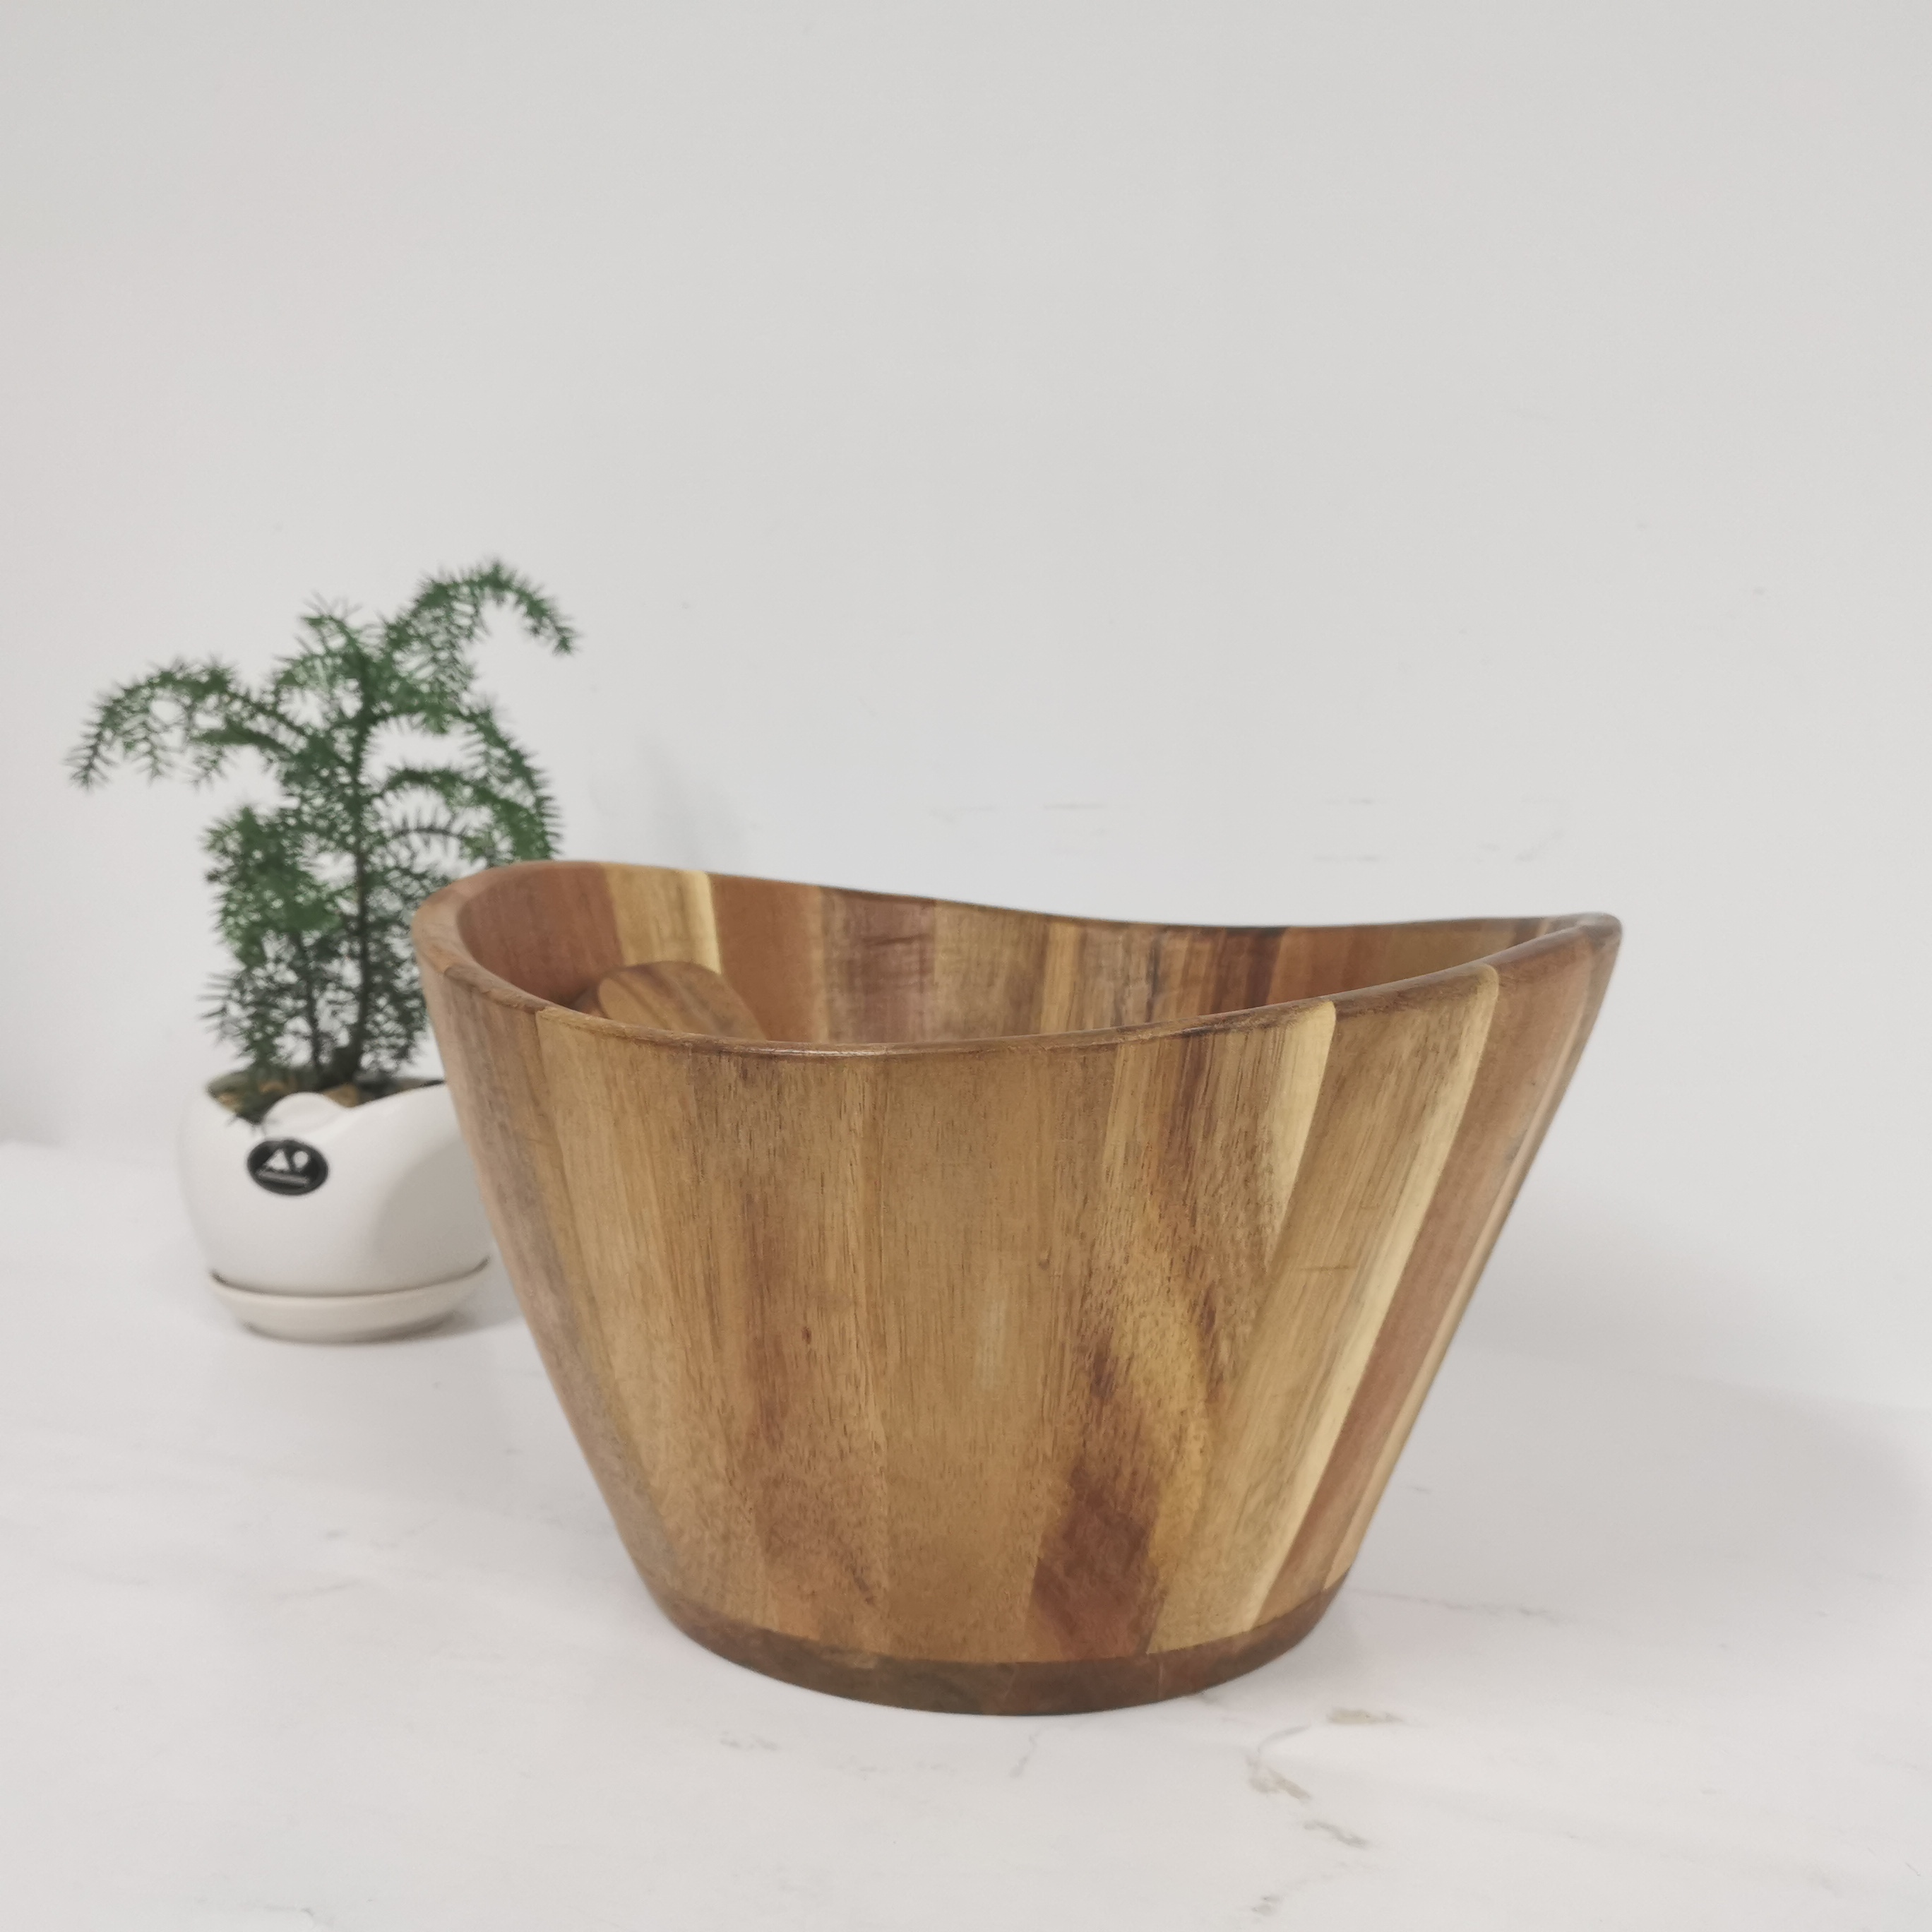 Wholesale 100 Acacia Wood Serving Bowl For Fruits Or Salads Buy Wood Salad Bowl Wooden Bowl Wooden Bowl Fruit Product On Alibaba Com